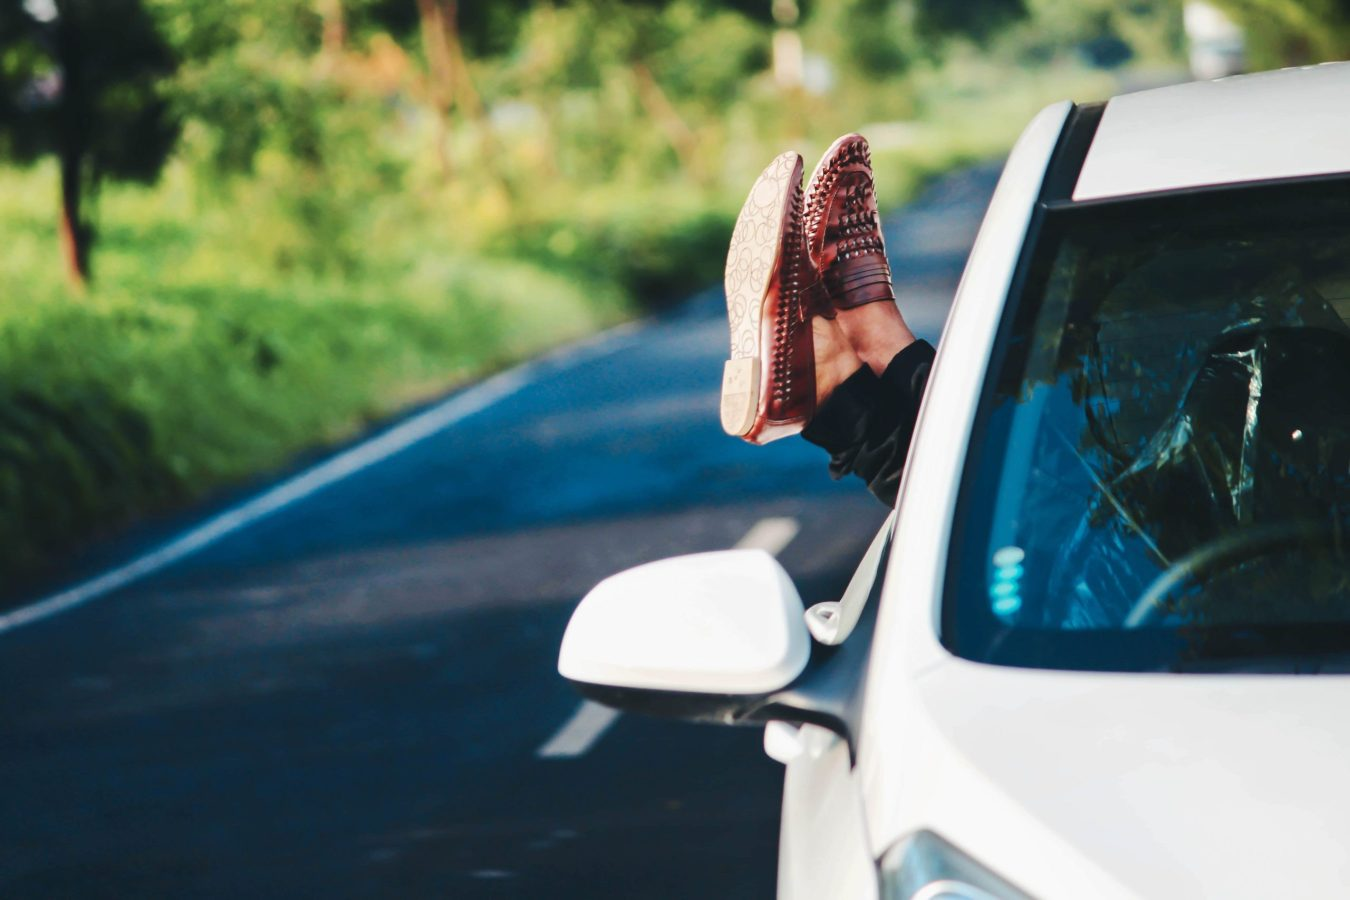 Have You Noticed These Gender Differences In Driving?